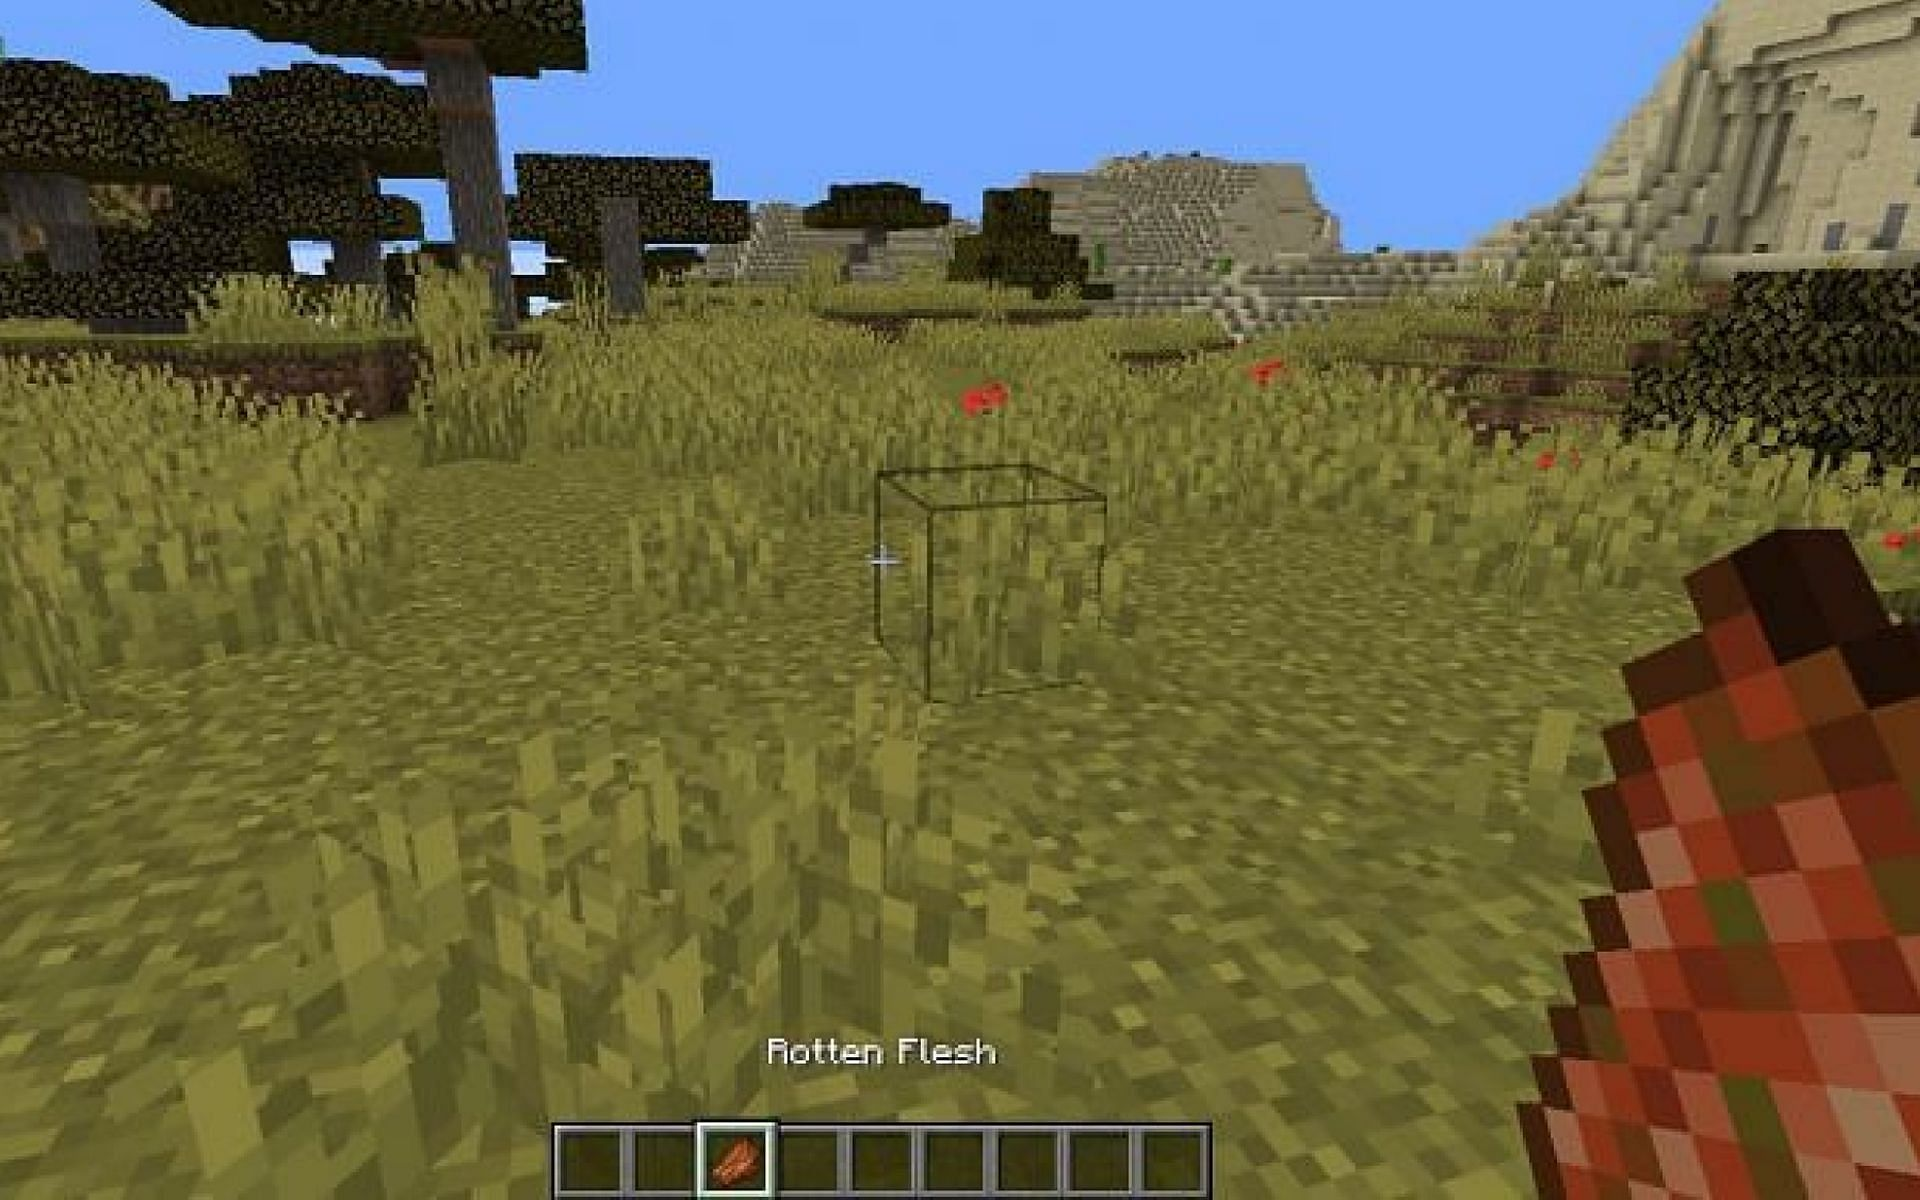 An image of a player who is about to eat rotten flesh (Image via Minecraft)